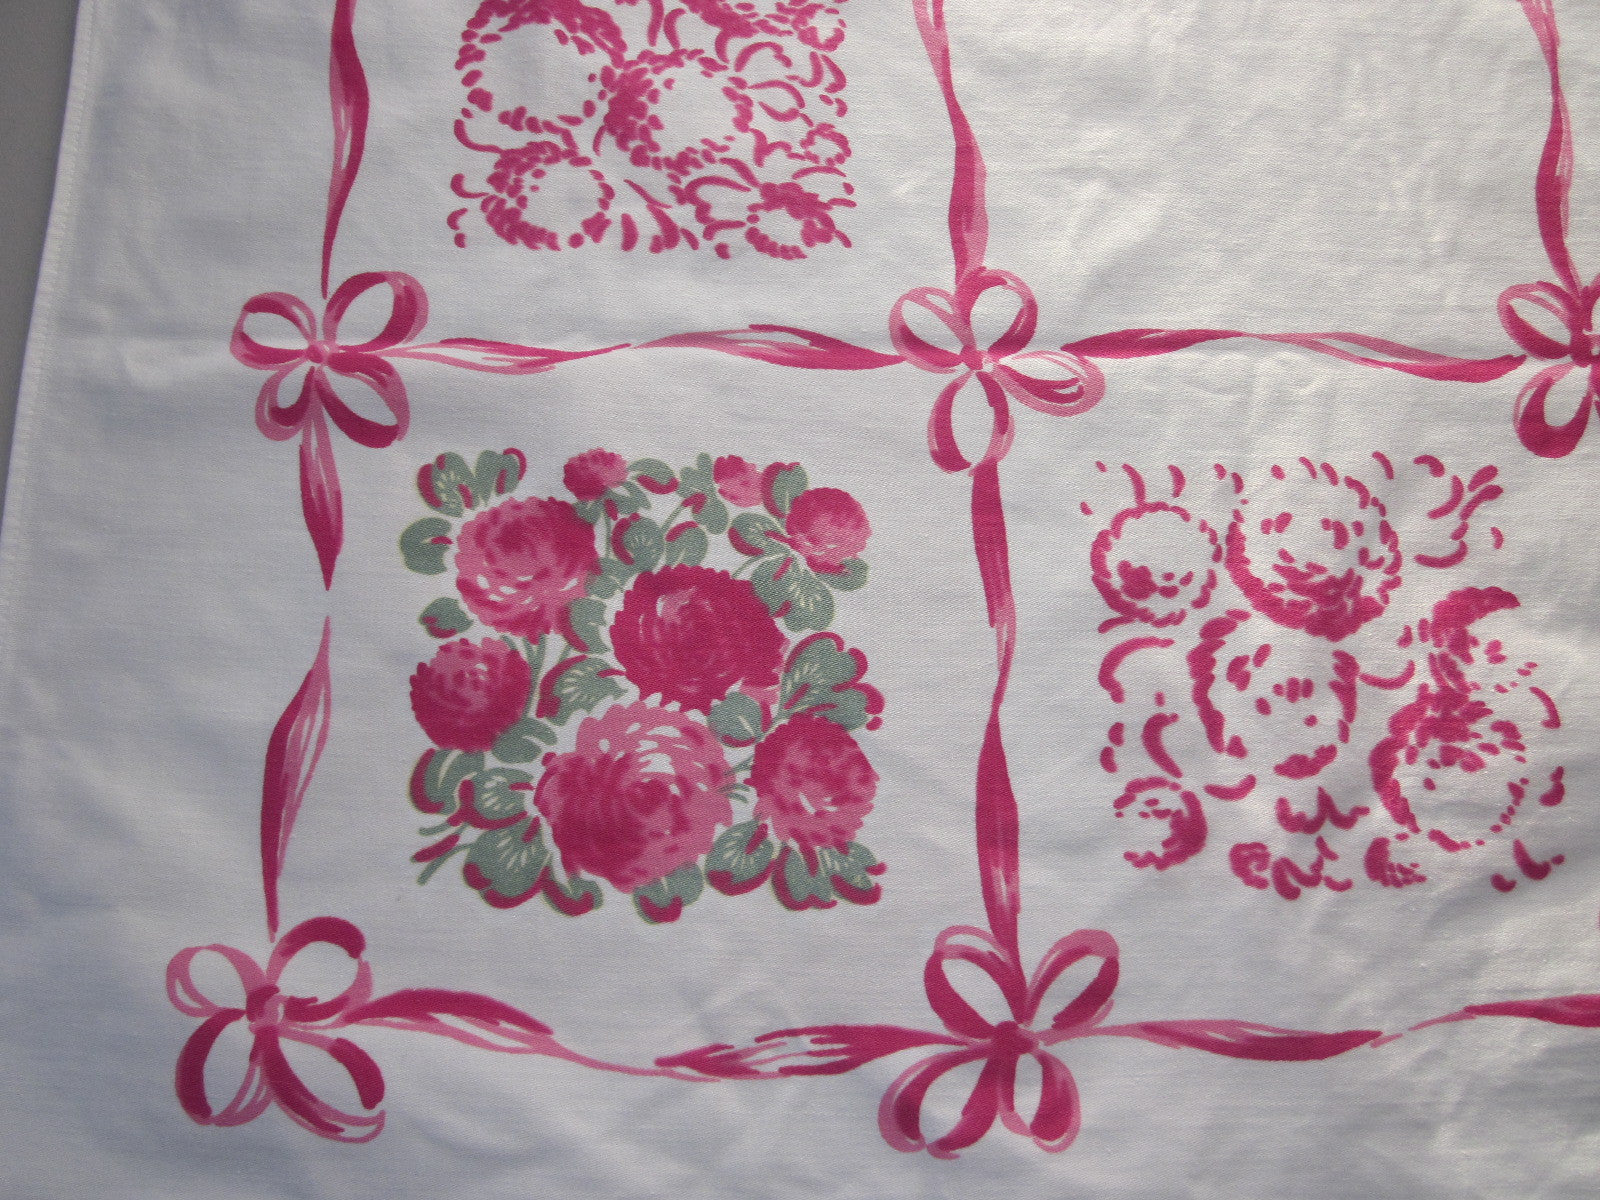 Pink Clovers Ribbons Floral Vintage Printed Tablecloth (66 X 50)